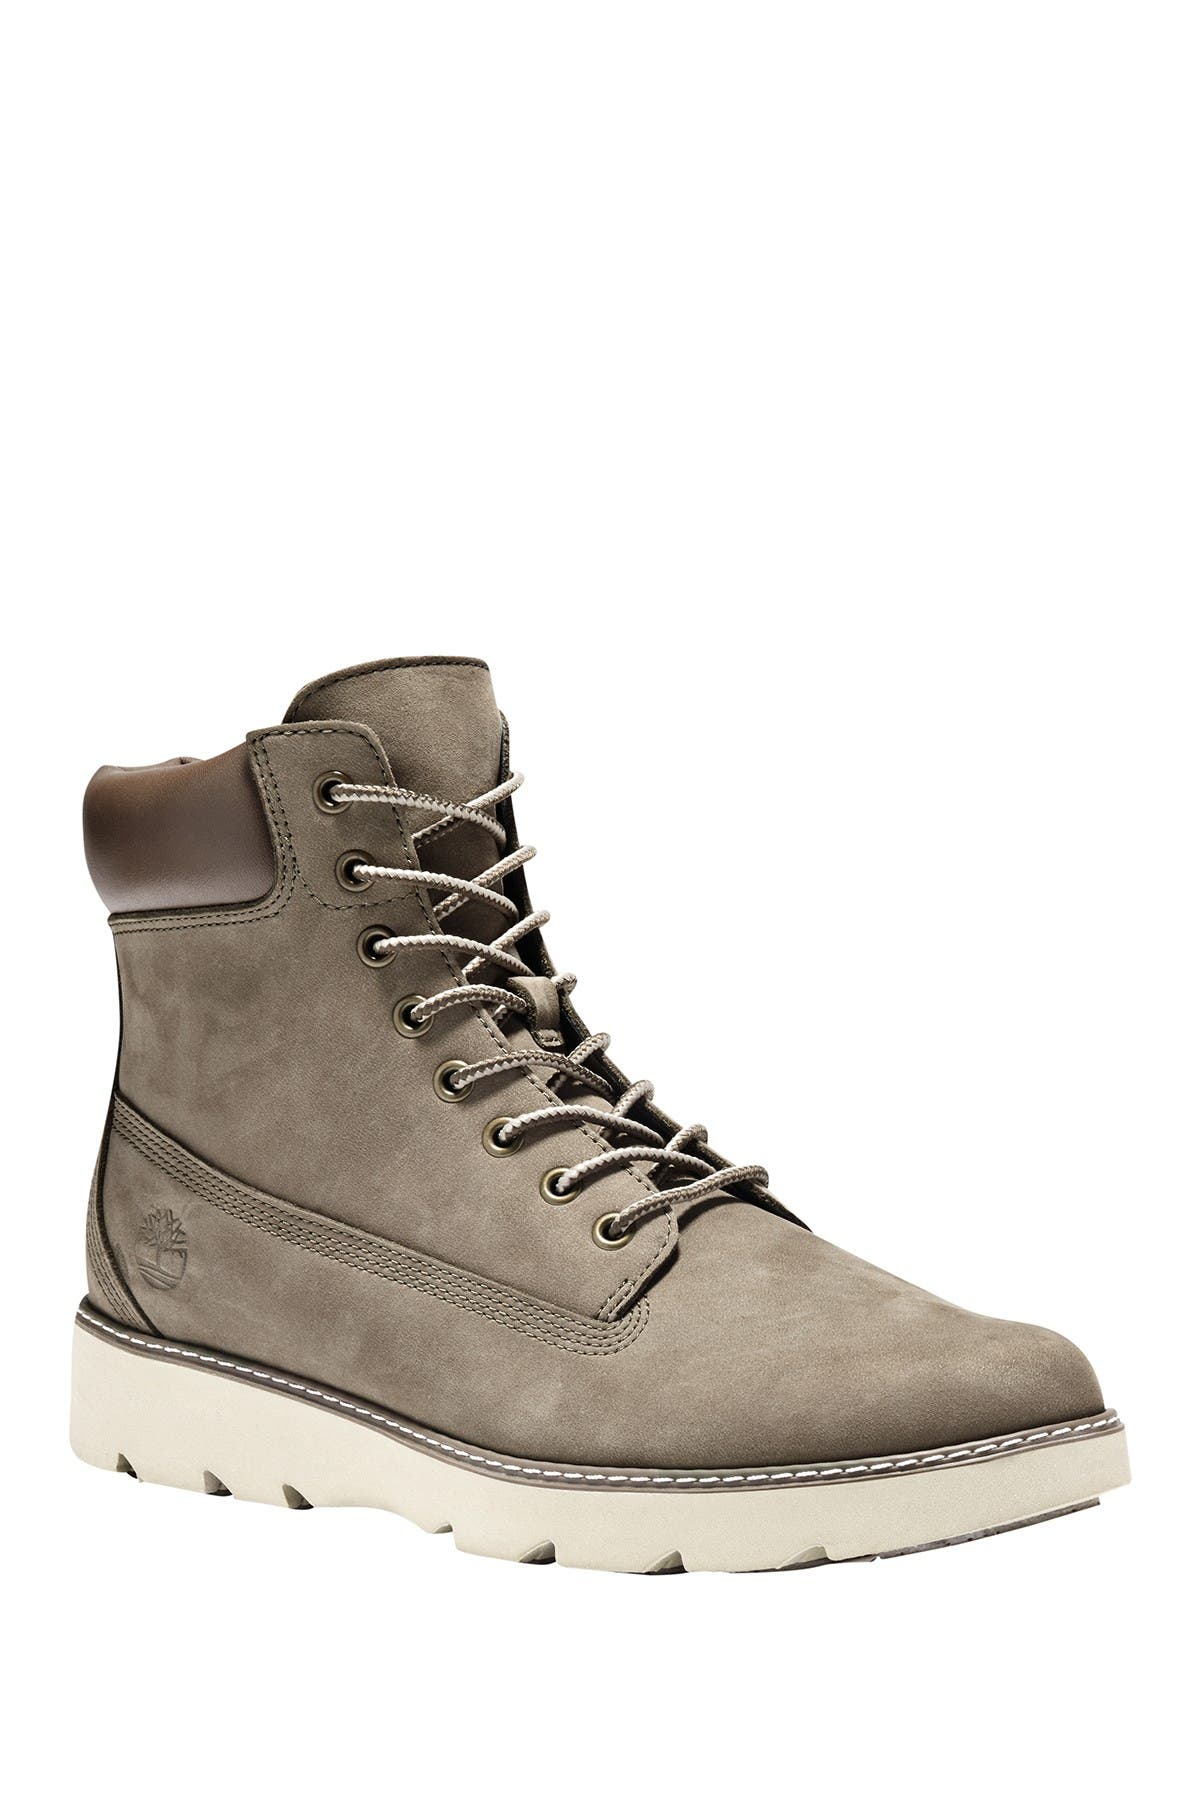 Image of Timberland Keeley Field Boot